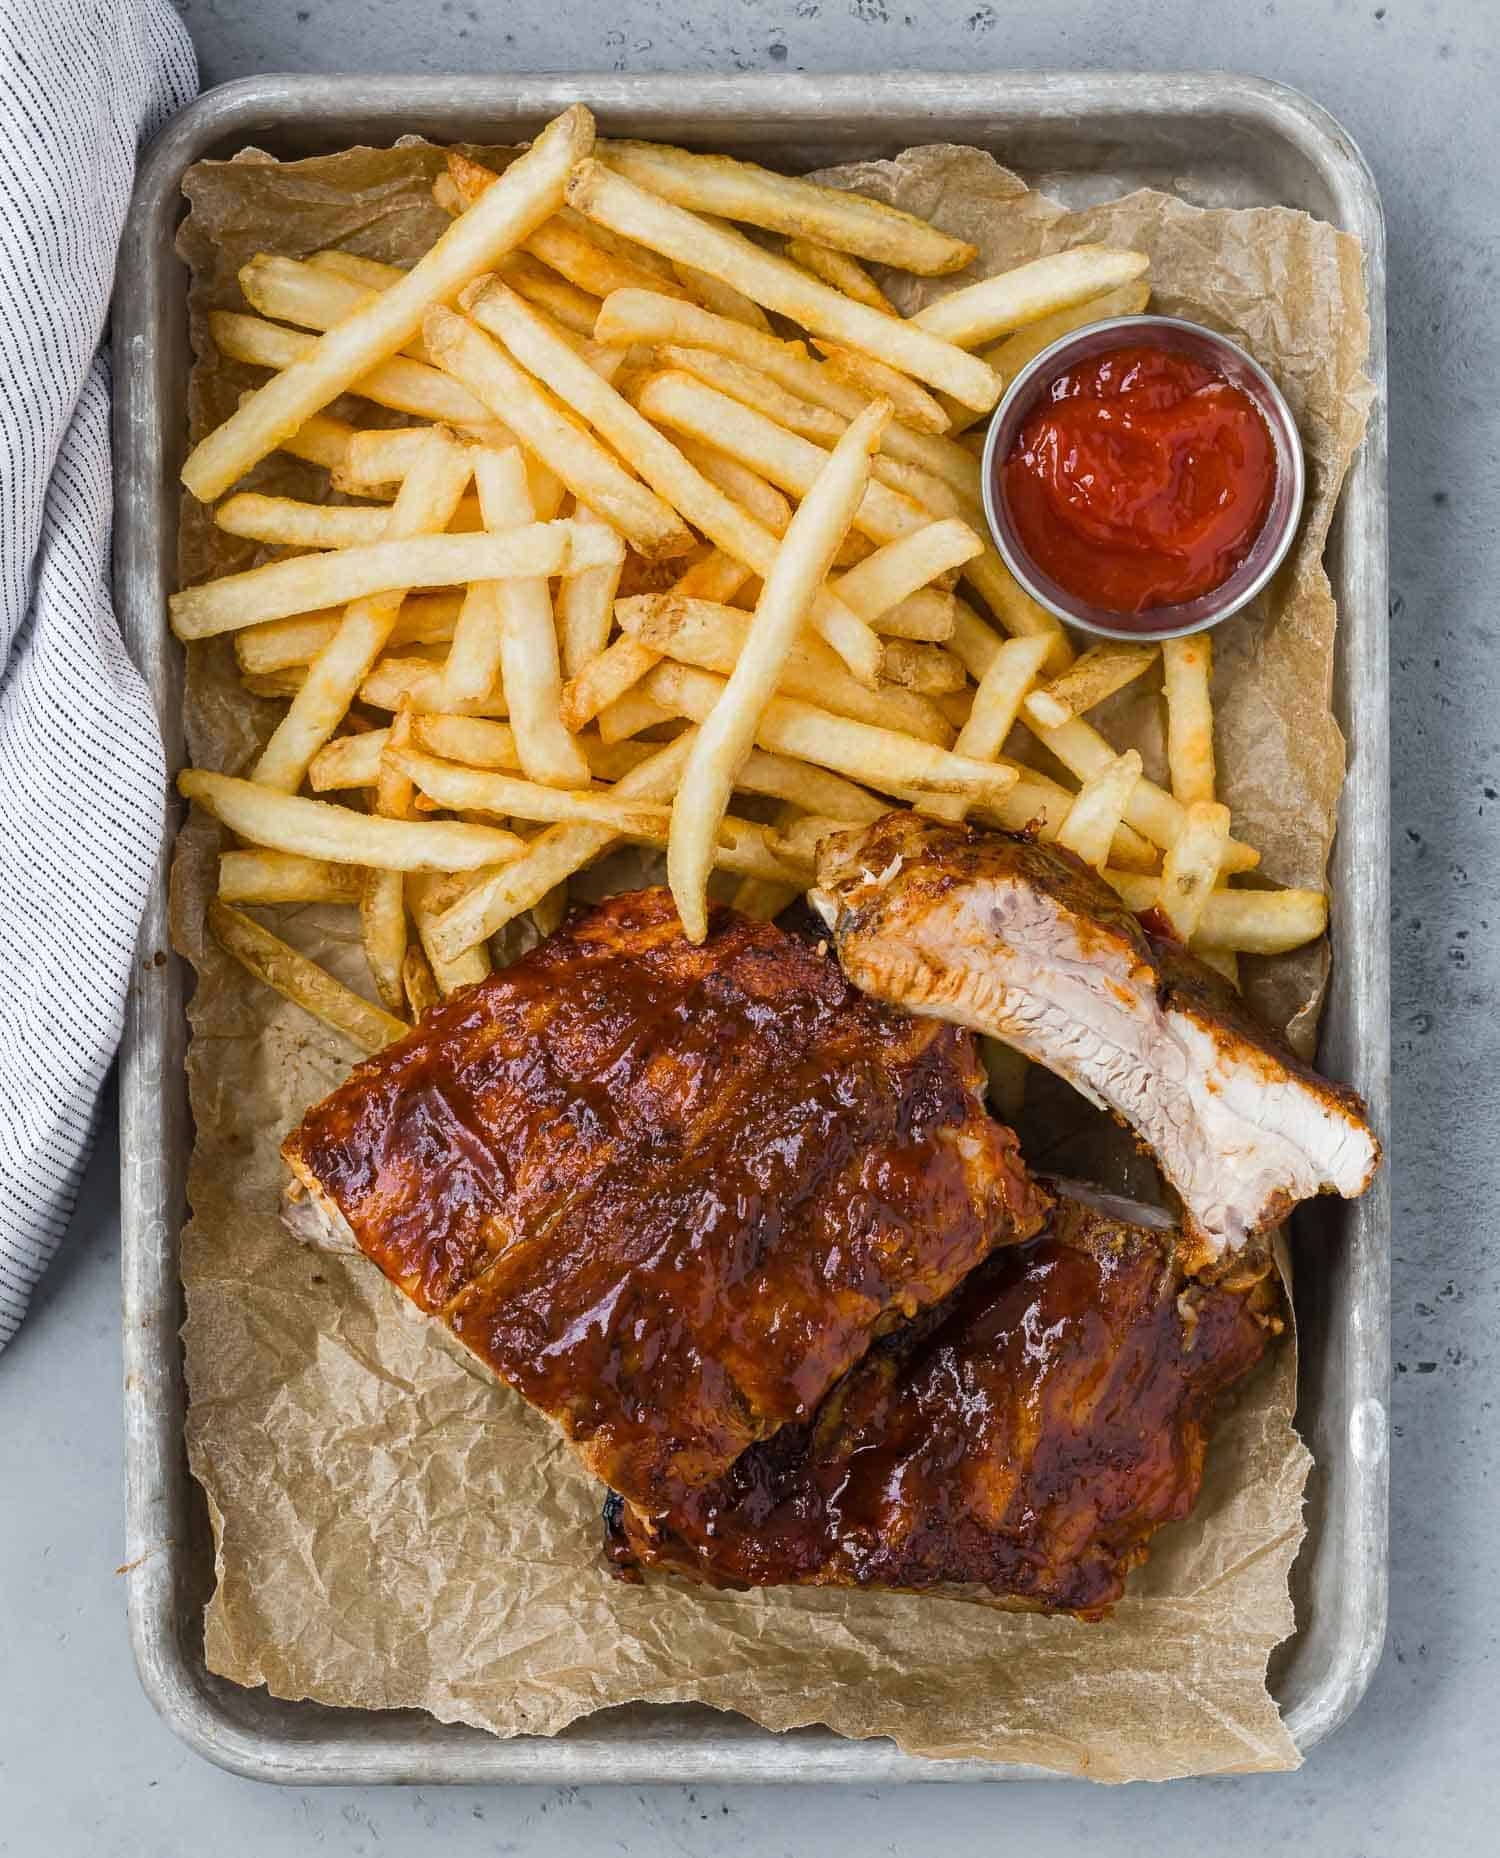 Overhead view of ribs on a tray with fries and ketchup.